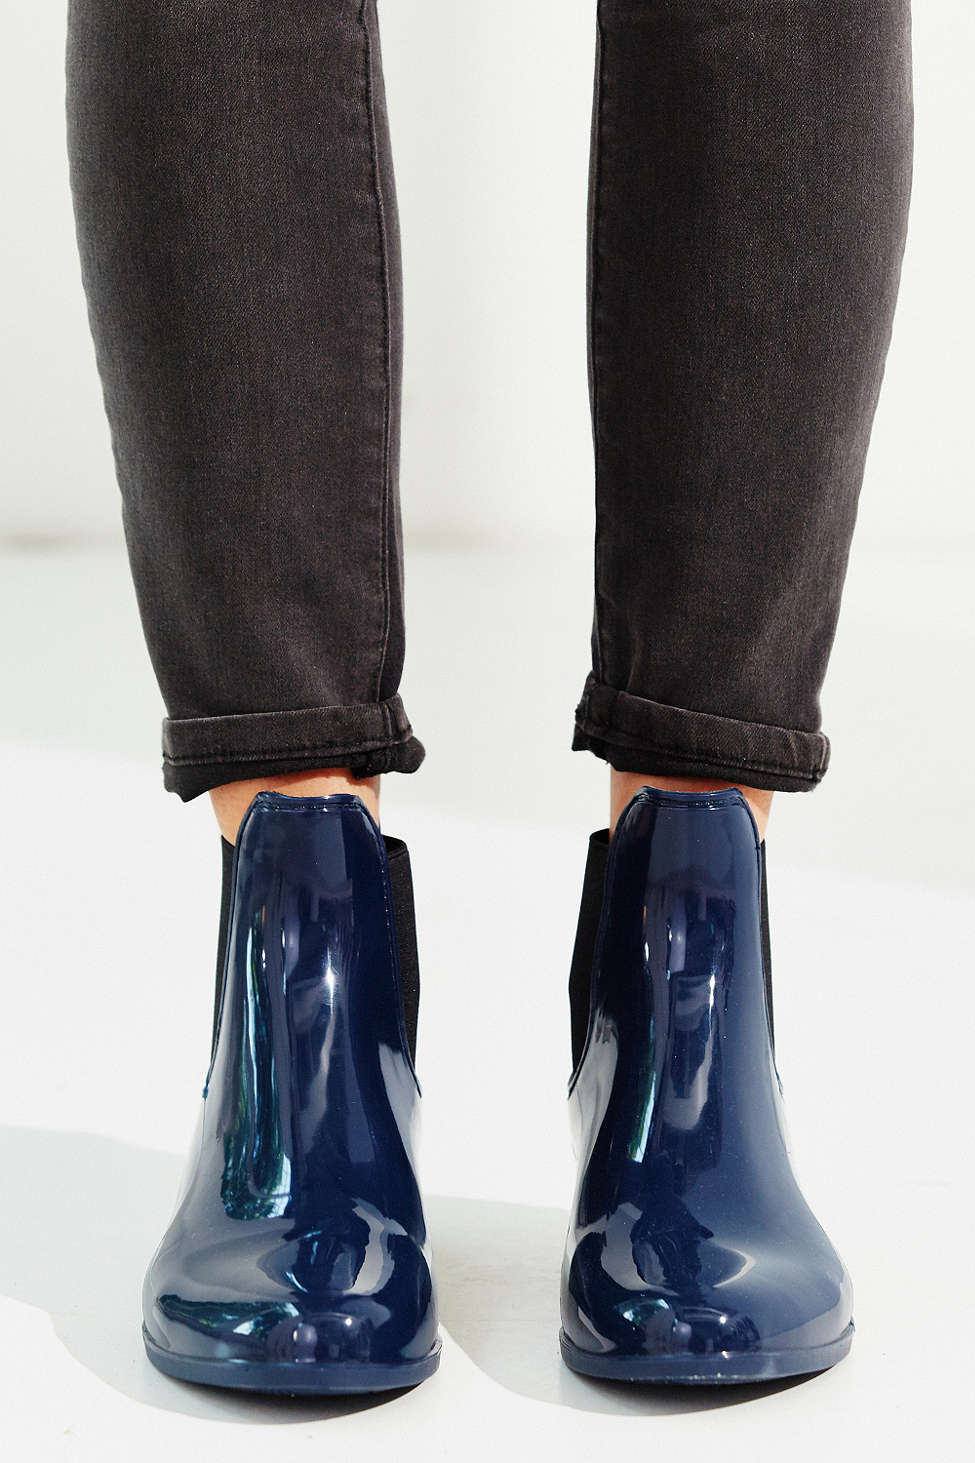 Sam Edelman Tinsley Rain Boot. Urban Outfitters. $55.